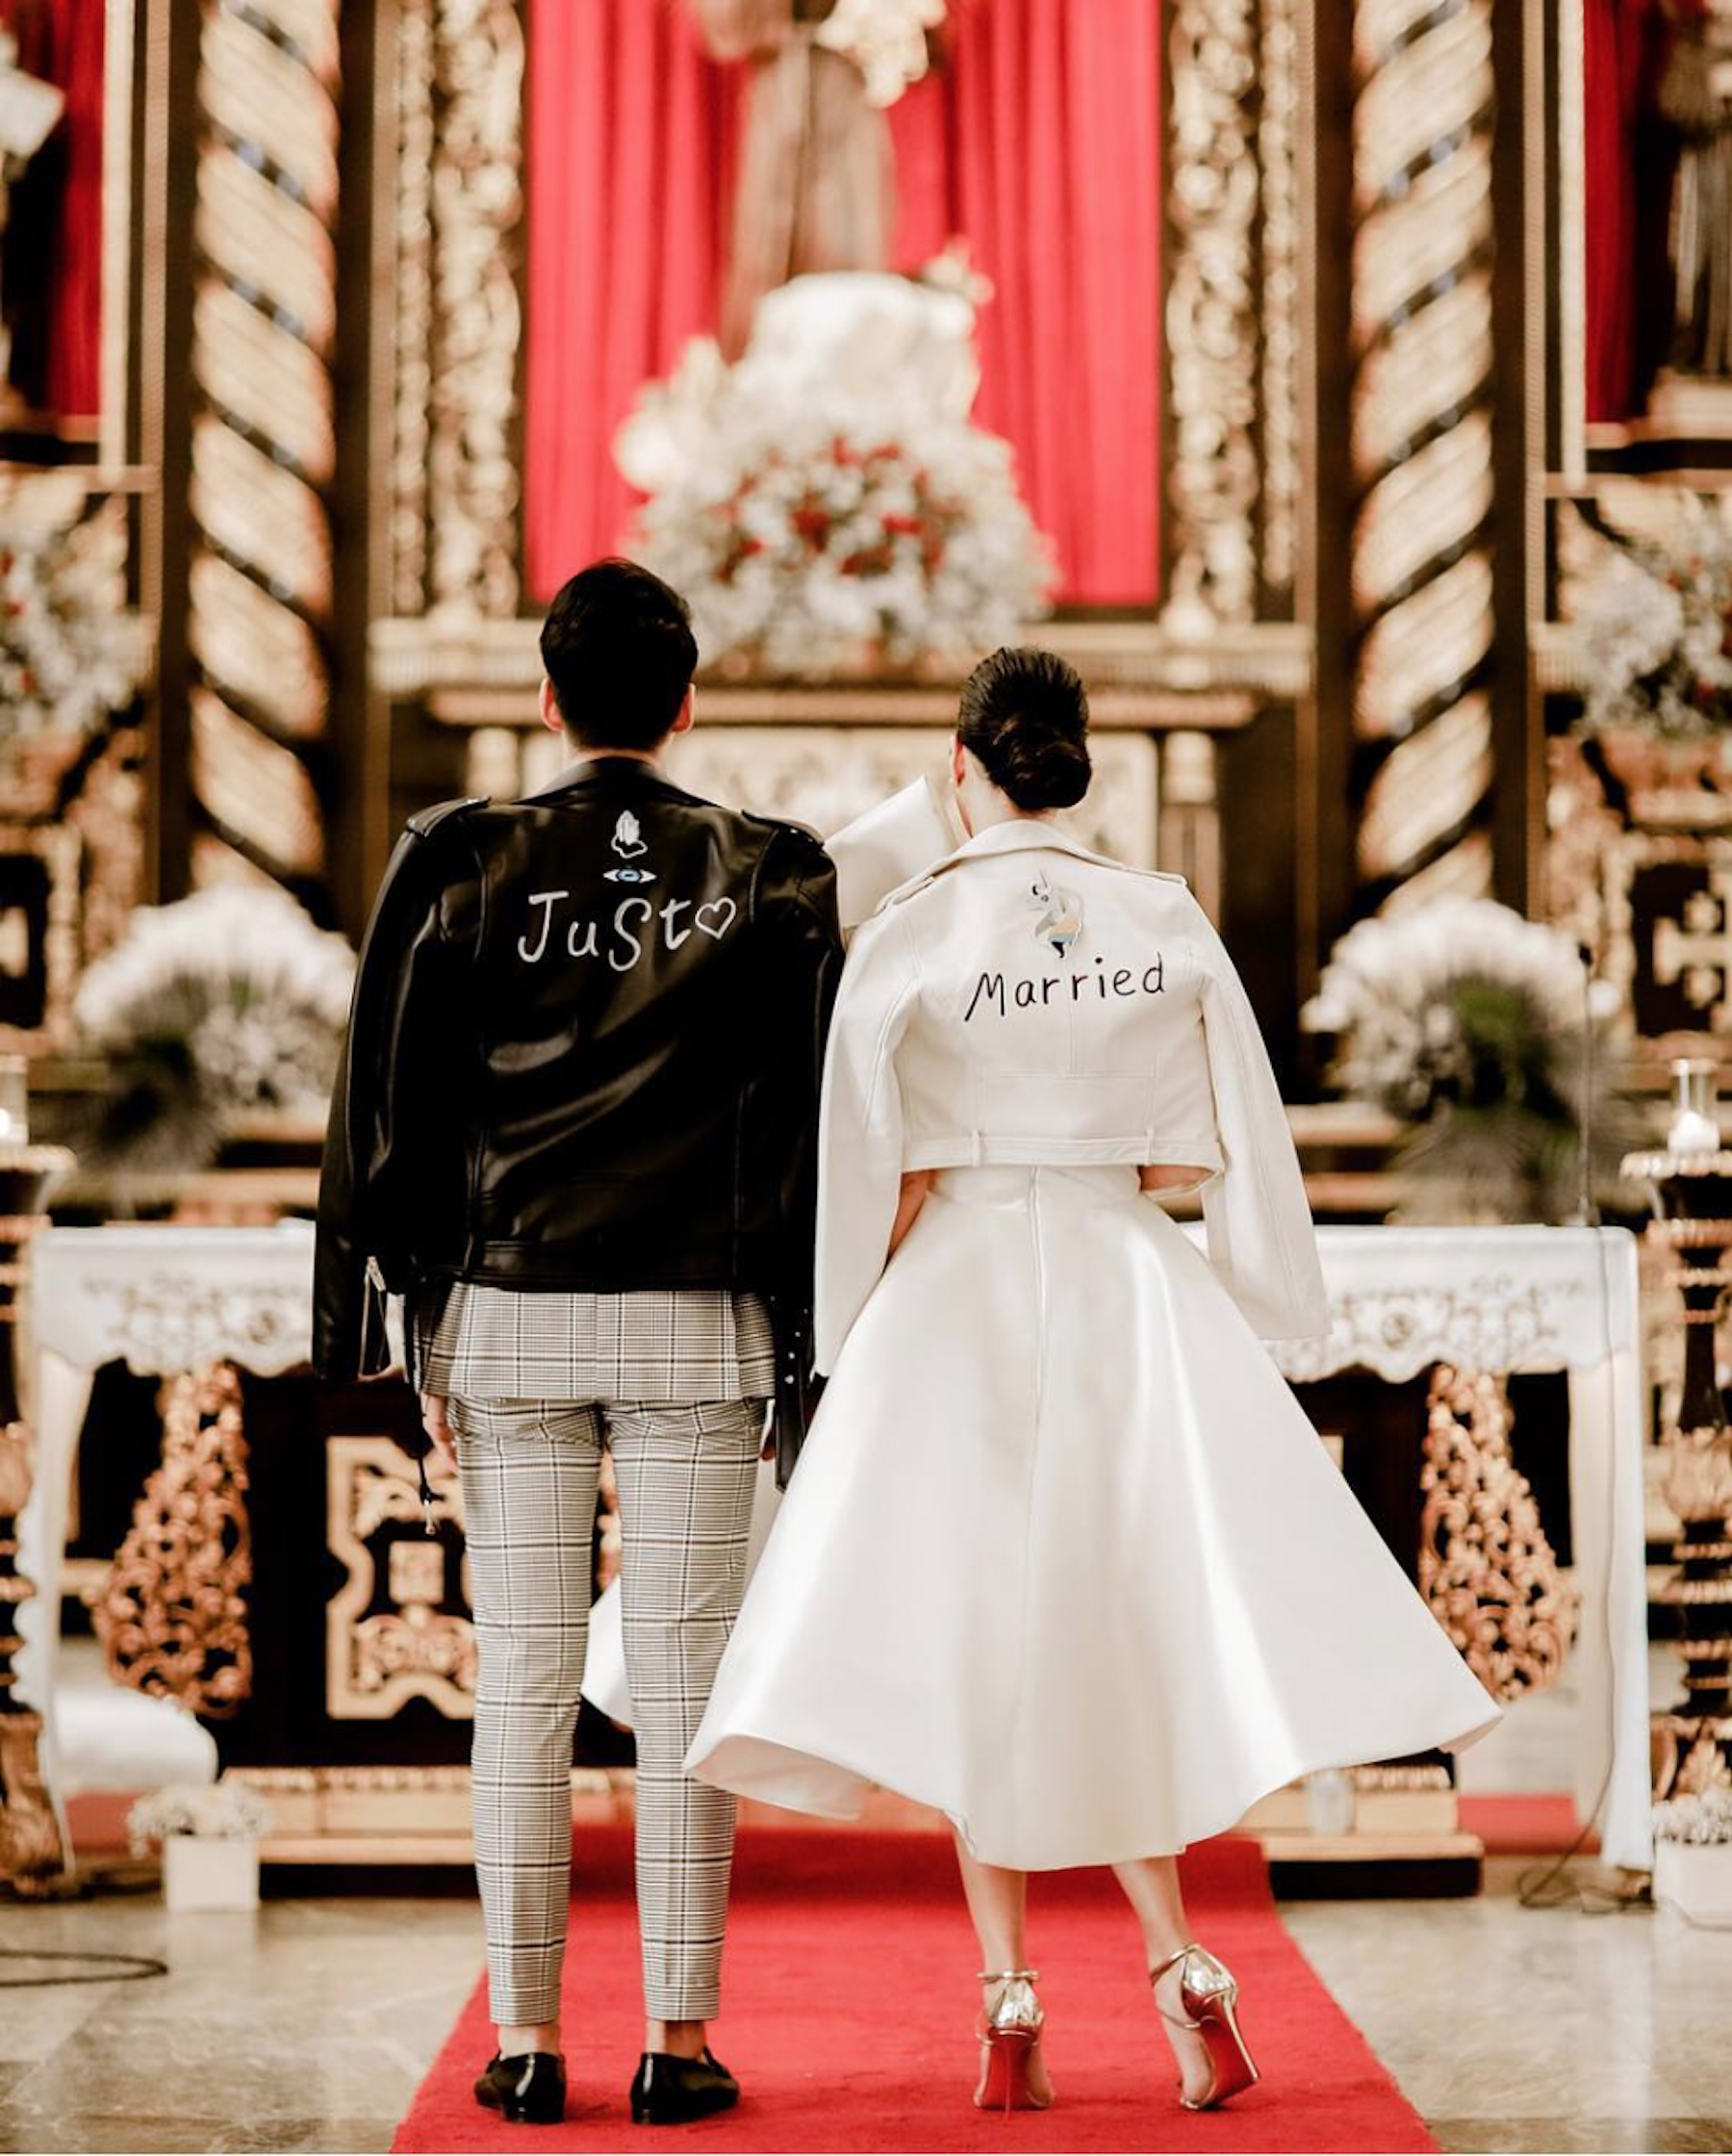 Bride's dress by Mark Bumgarner. Leather jackets styled by groomRob Mananquil. - Photo by Proud Rad